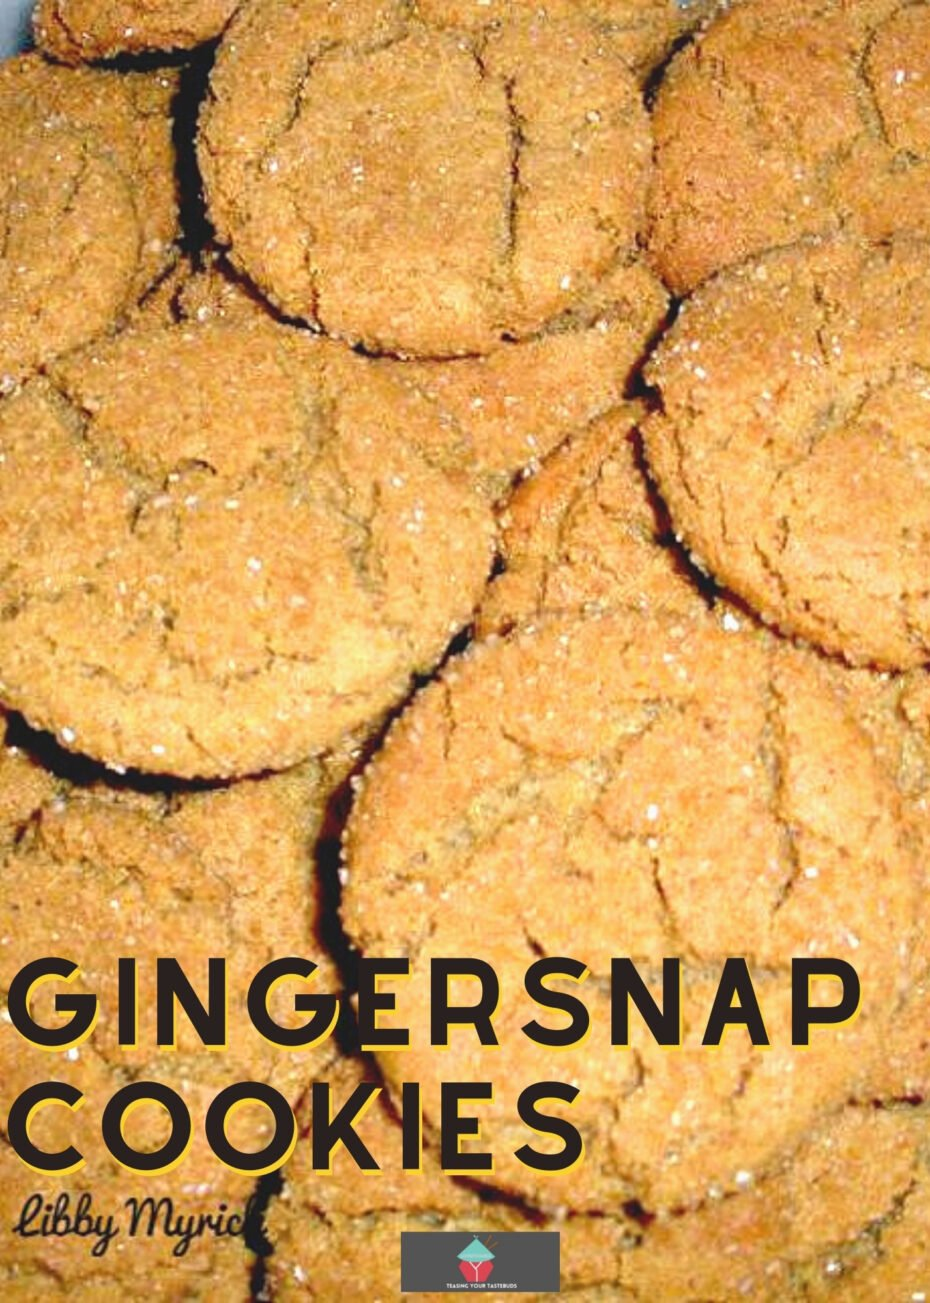 Gingersnap Cookies. Crunchy gingersnap cookies have a lovely combination of spices and ginger to make the perfect cookie. Quick and easy recipe using simple ingredients.